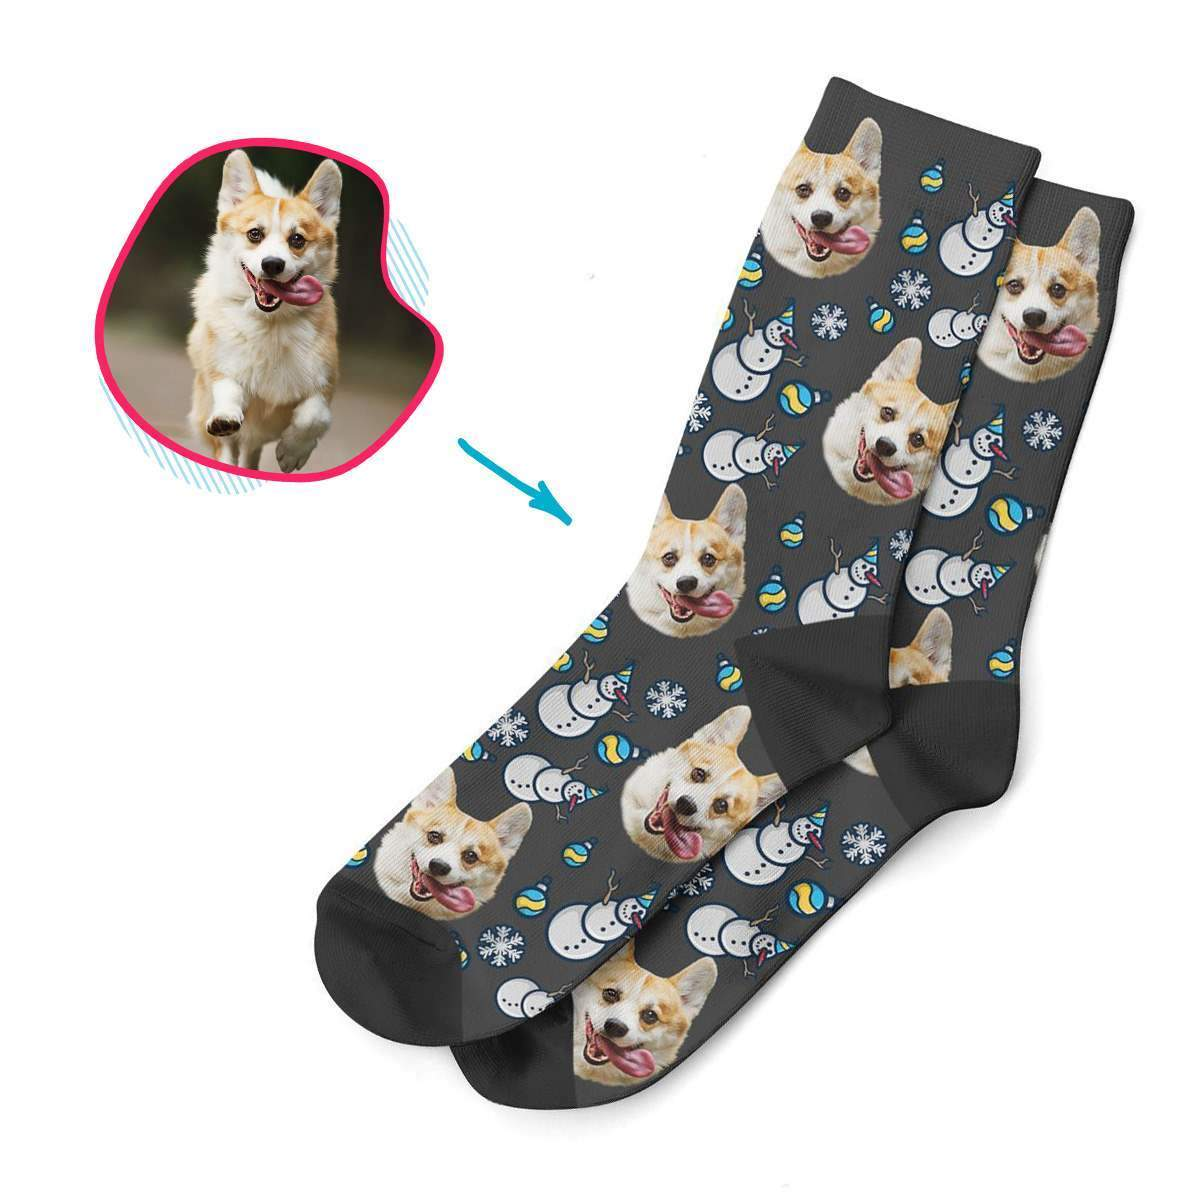 dark Snowman socks personalized with photo of face printed on them